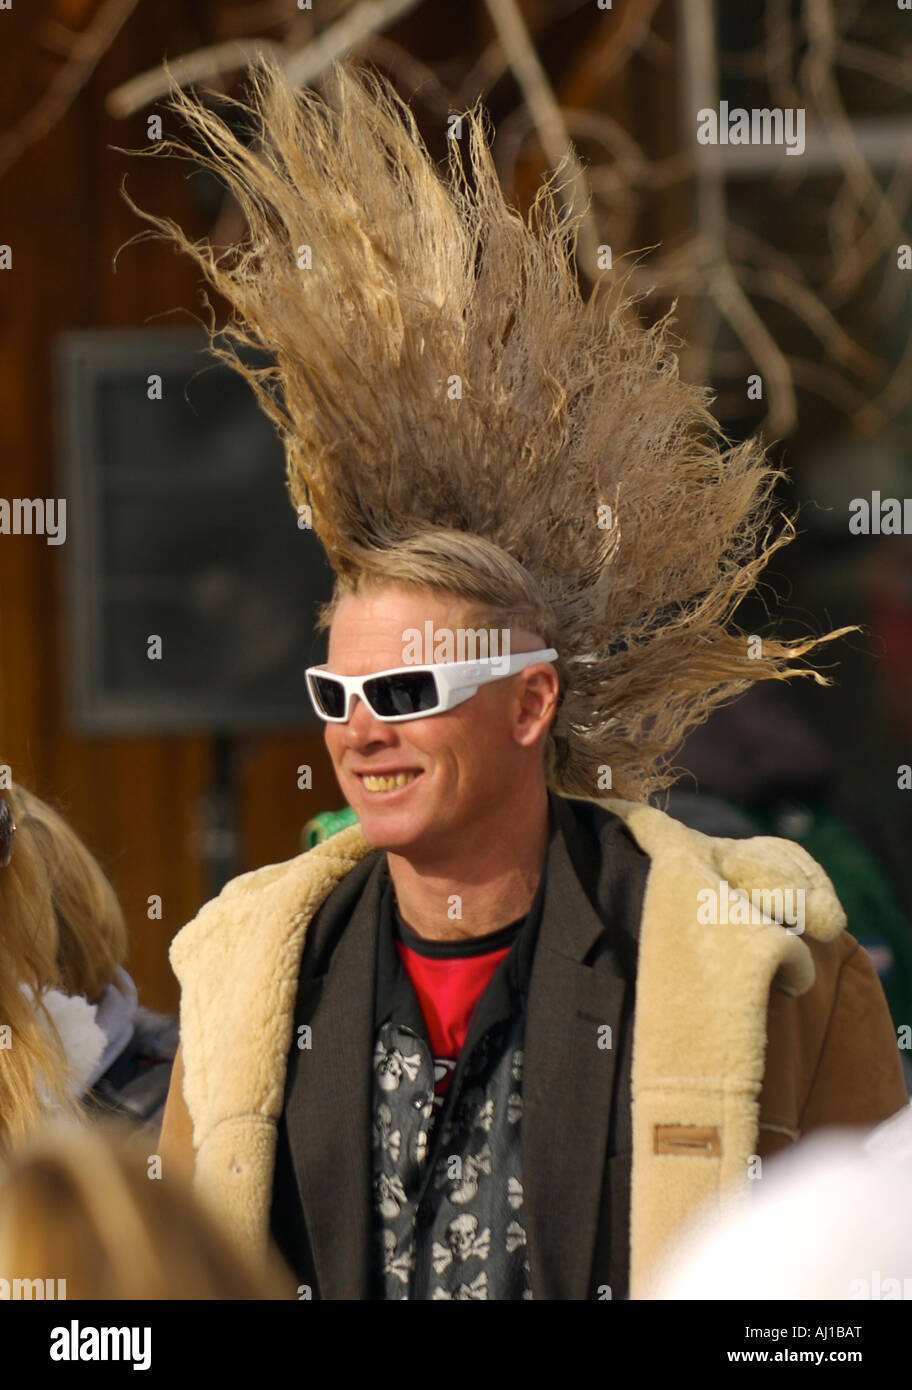 Smiling Man With A Mohawk Haircut And Sunglasses At The Espn Winter